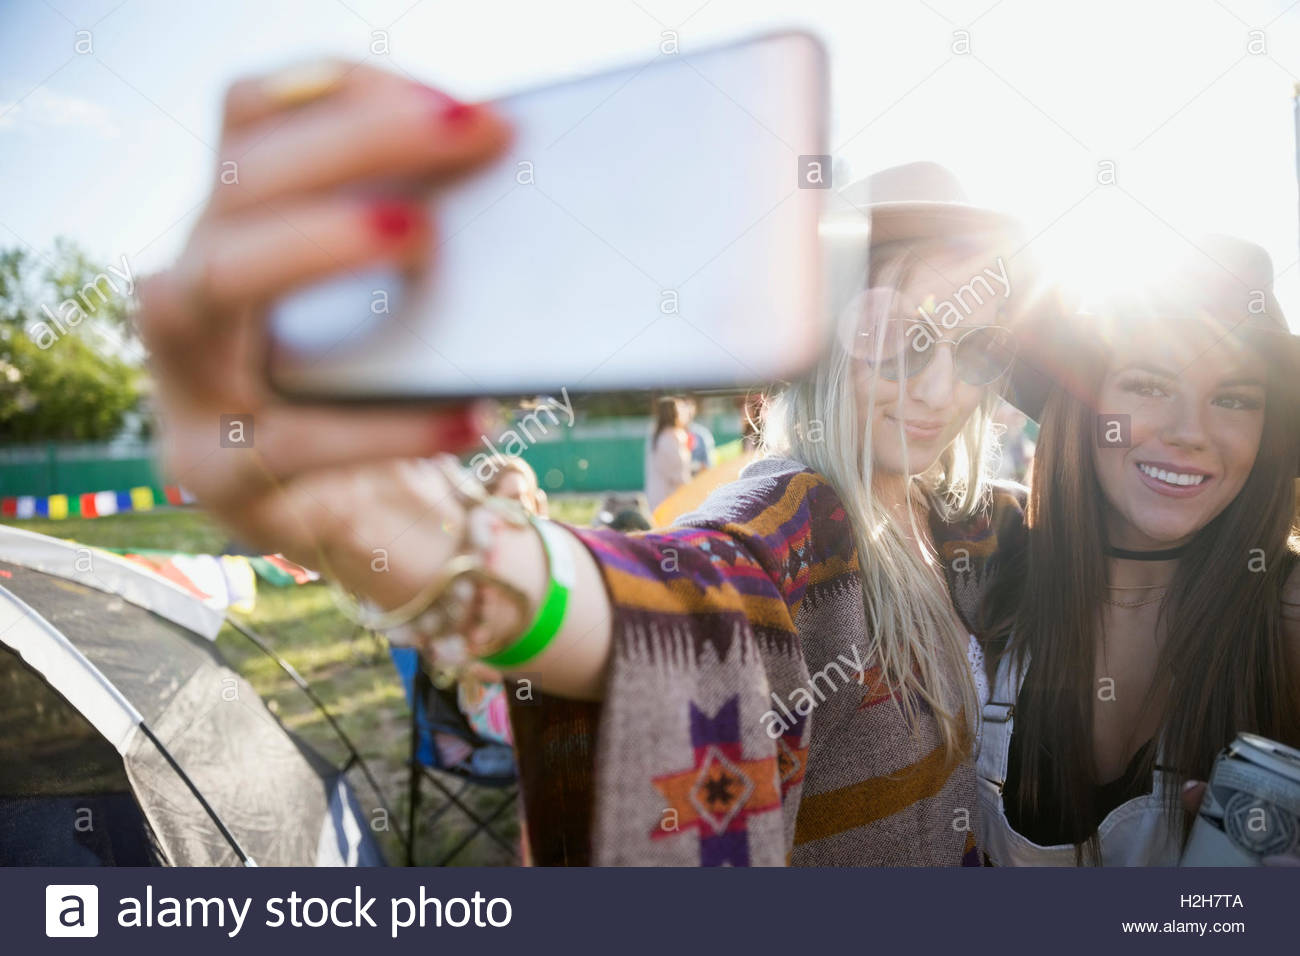 Les jeunes femmes en tenant à selfies summer music festival camping Photo Stock